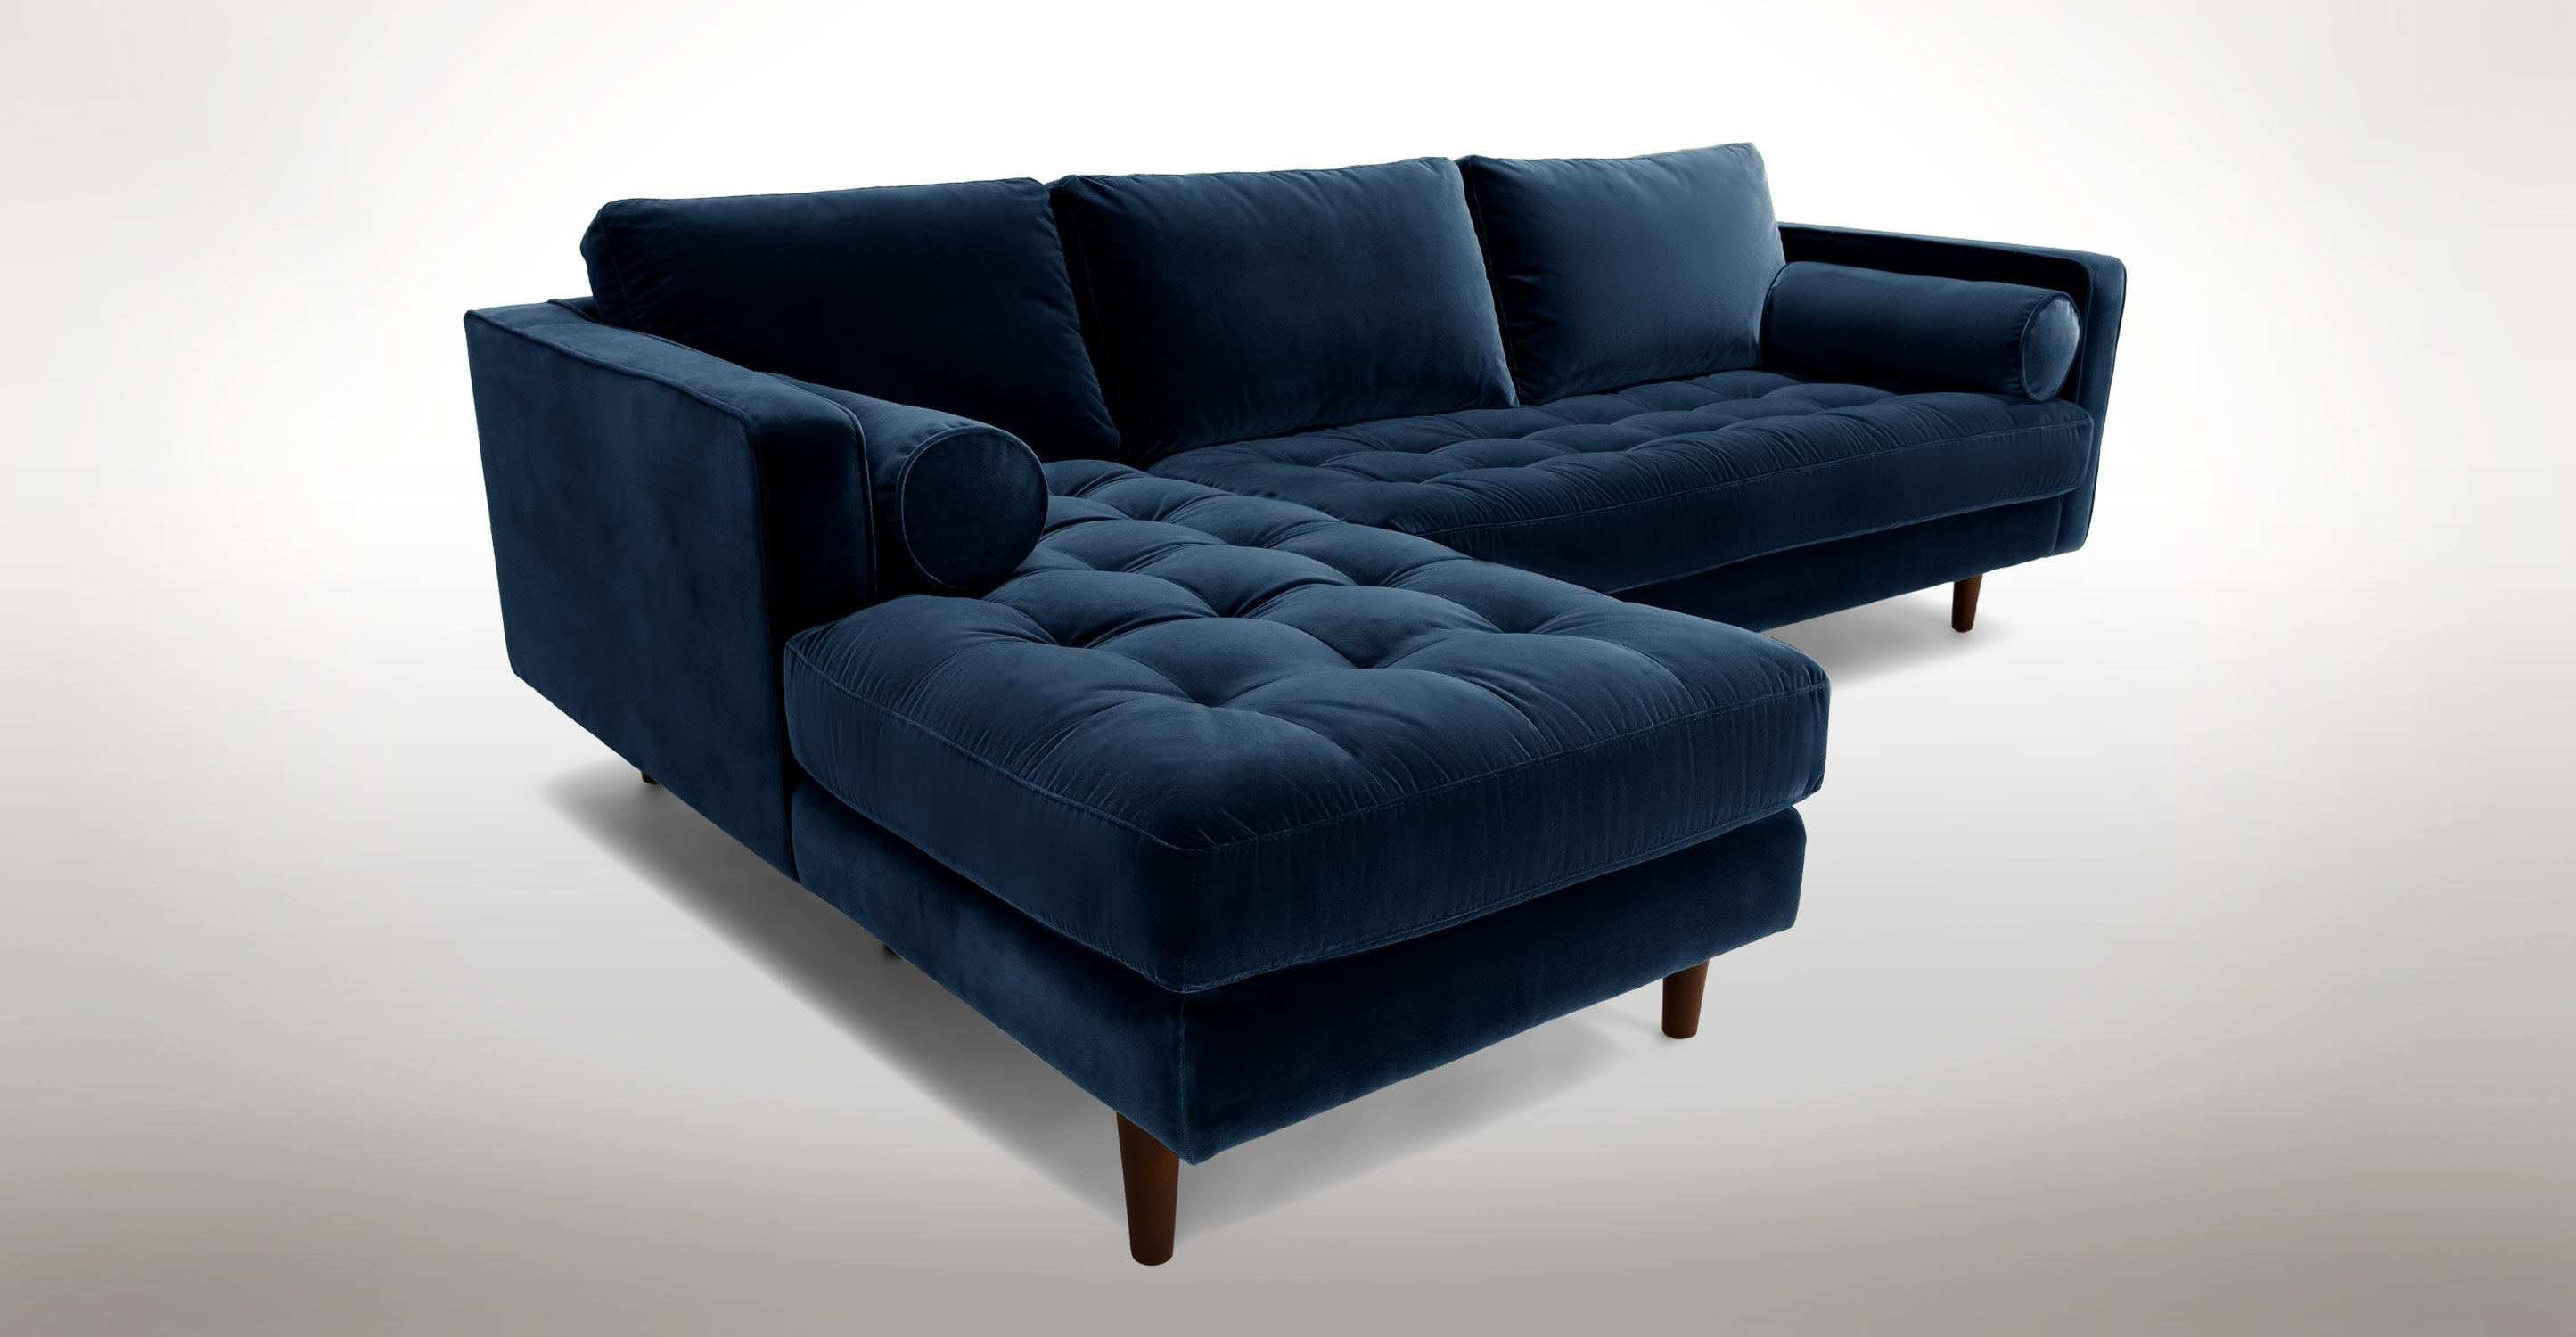 sofas sale sectional inspirations for velour velvet austin in financing staggering picture blue sofa sectionals hereo with tx